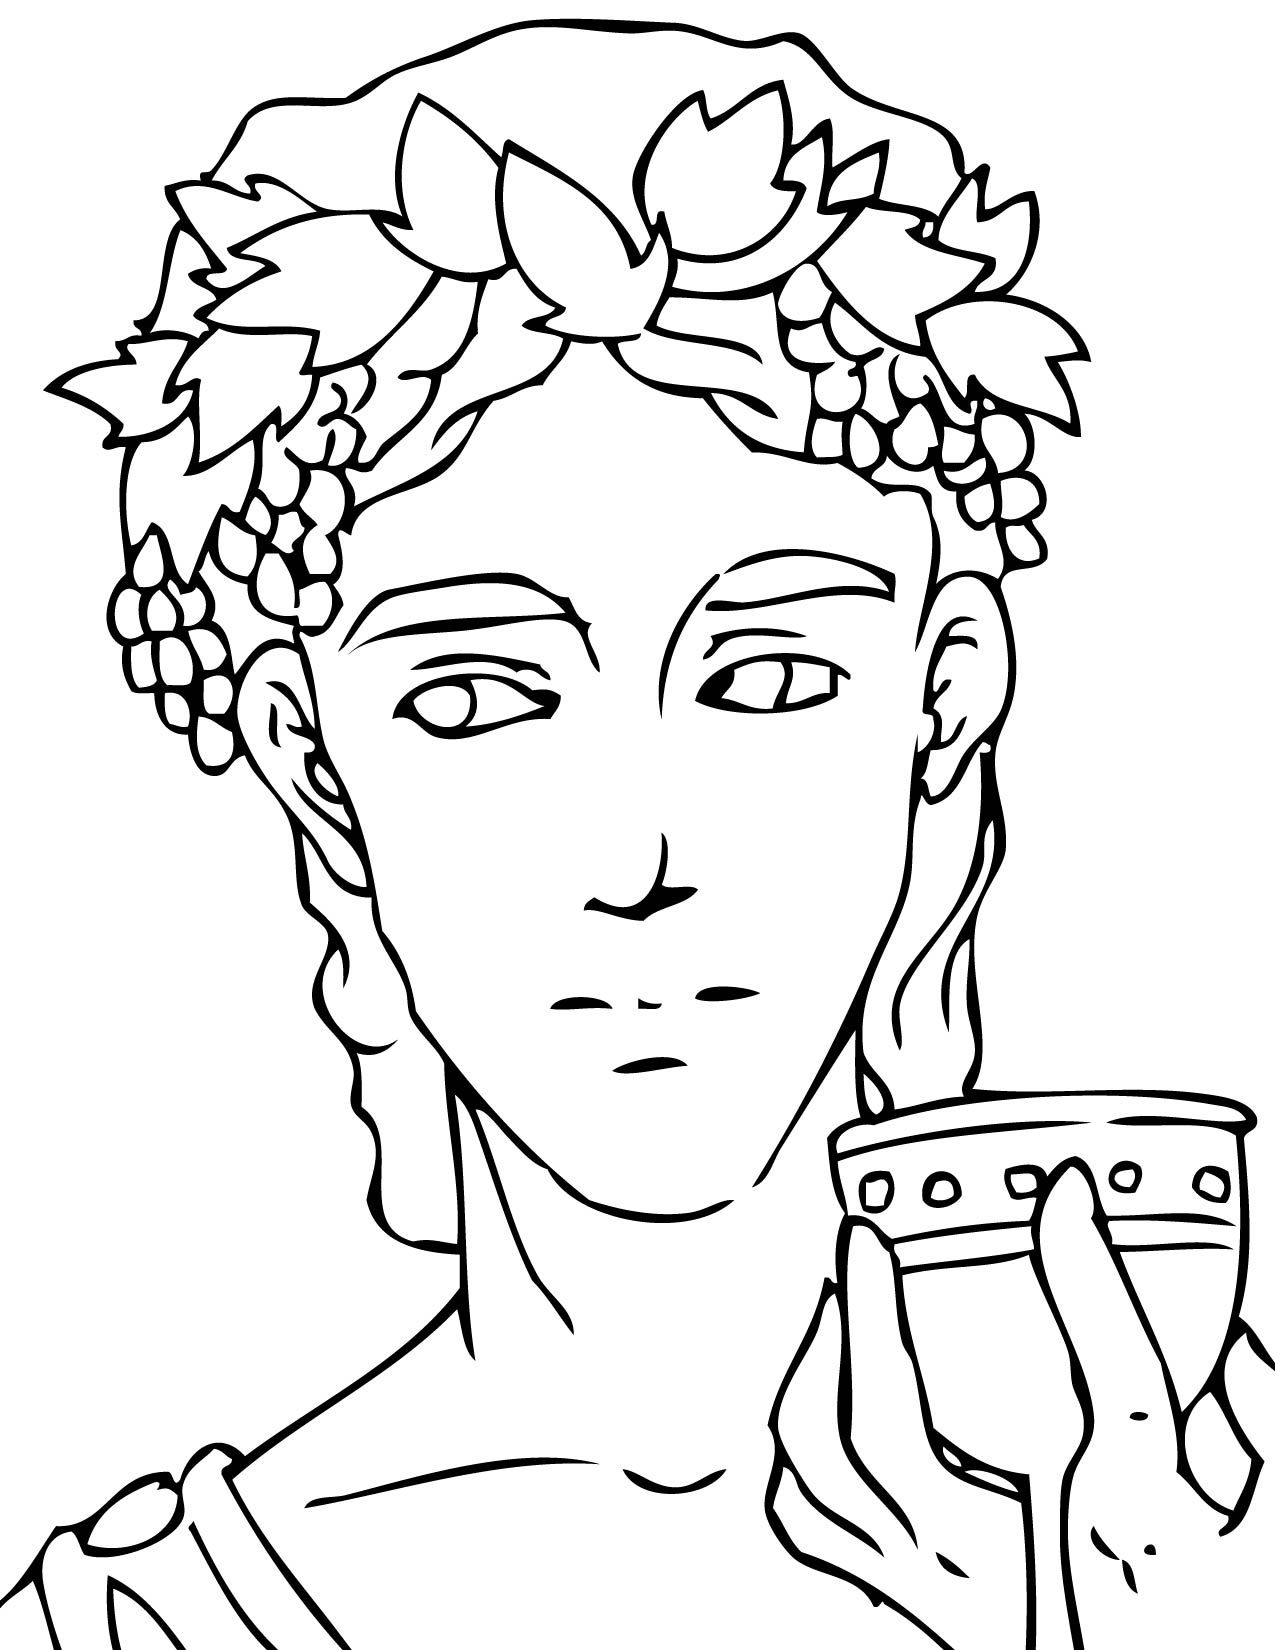 greek-gods-and-goddesses-coloring-pages | Coloring Pages For Kids ...